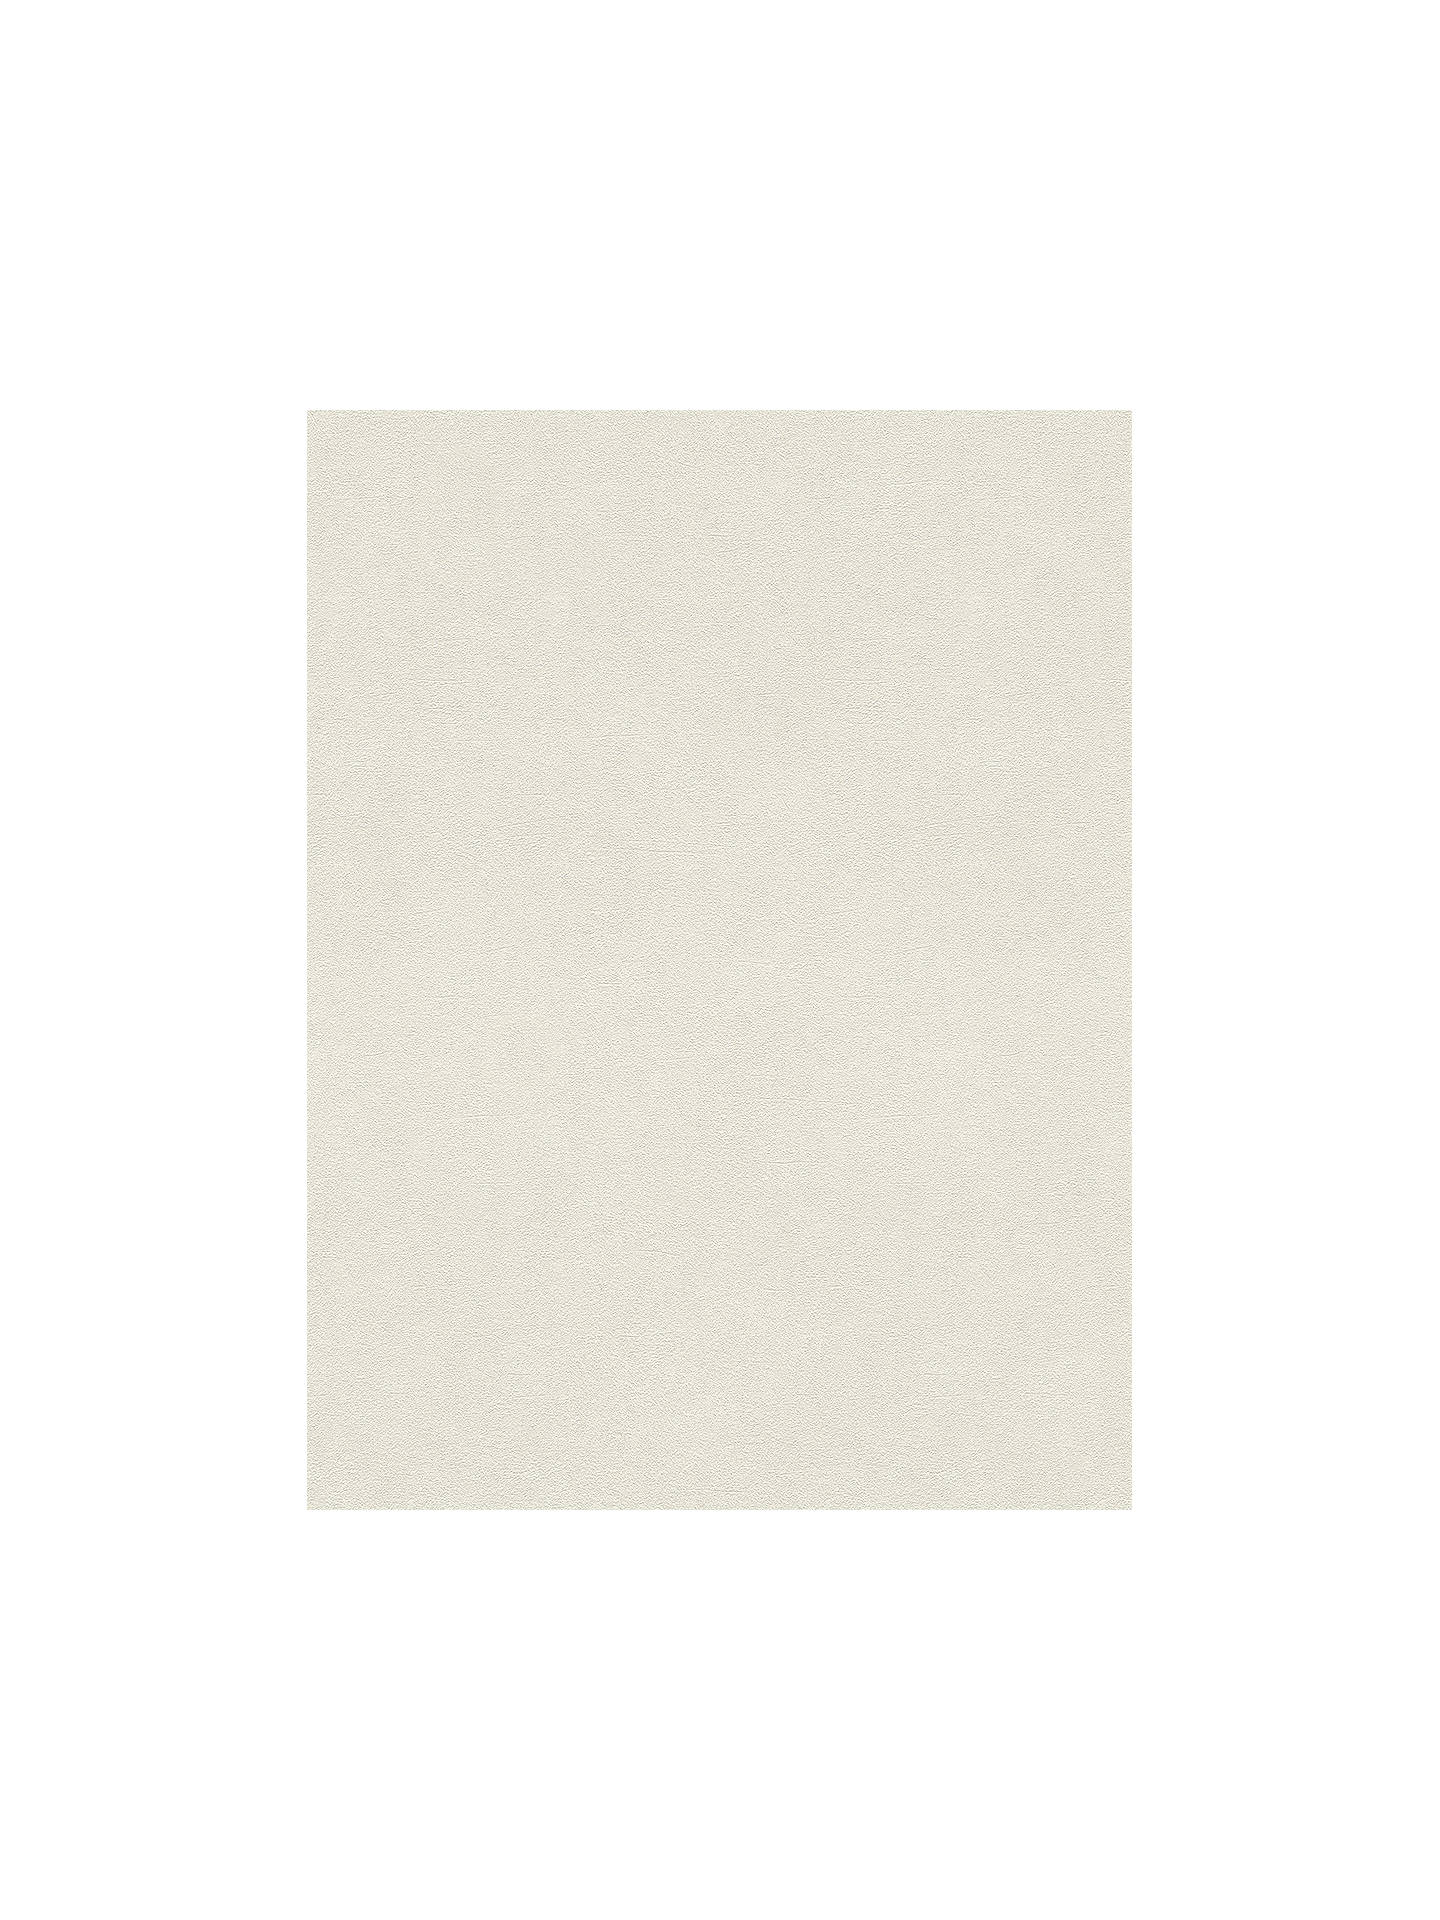 Buy Galerie Concrete Wallpaper, 467109 Online at johnlewis.com